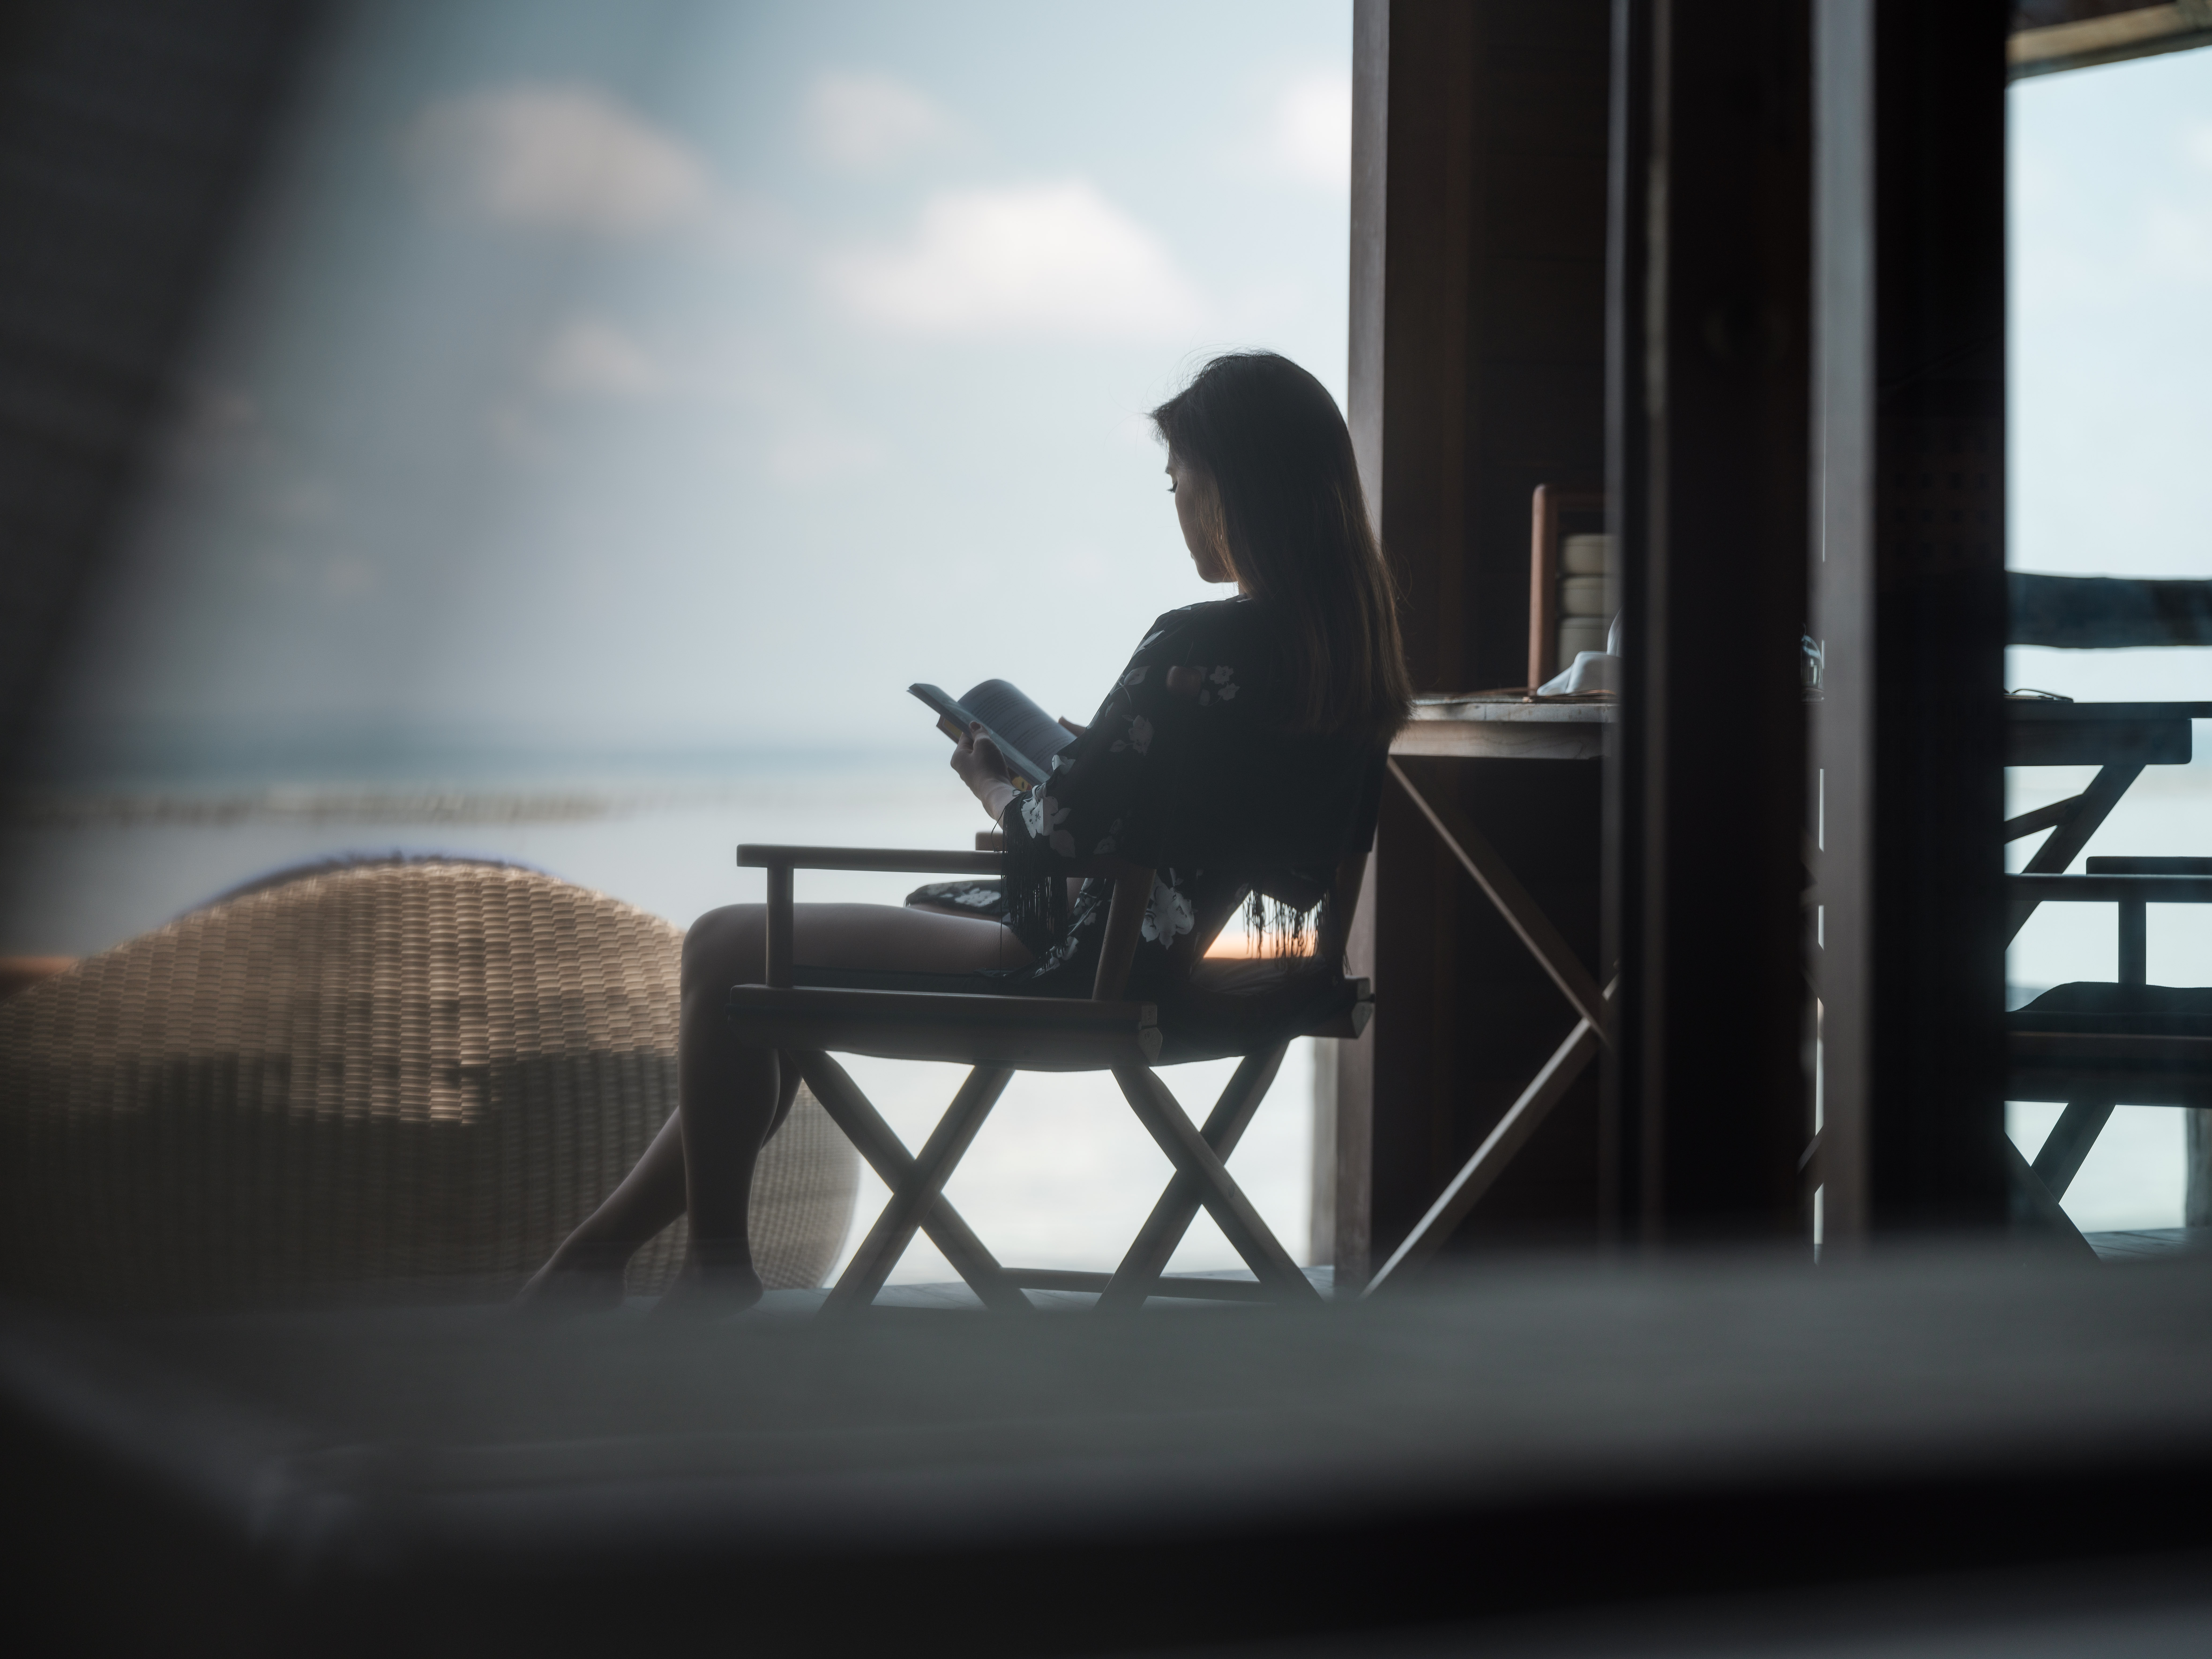 asian_girl_black_robe_on_arm_chair_reading_book_in_overwater_suite_blurred_lagoon_view